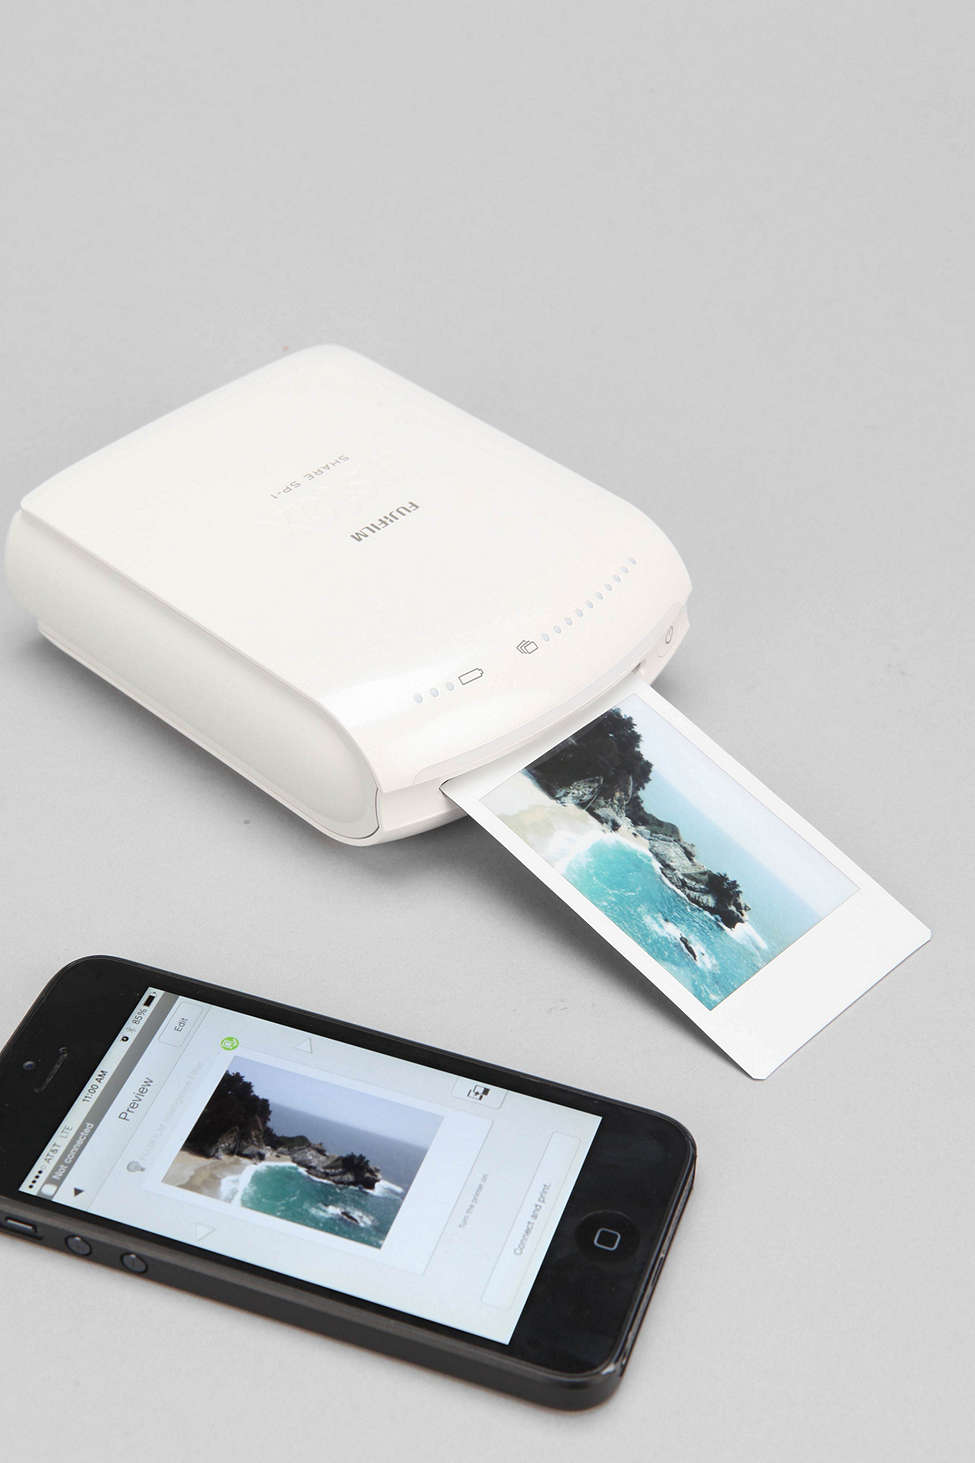 Fujifilm Instax printer